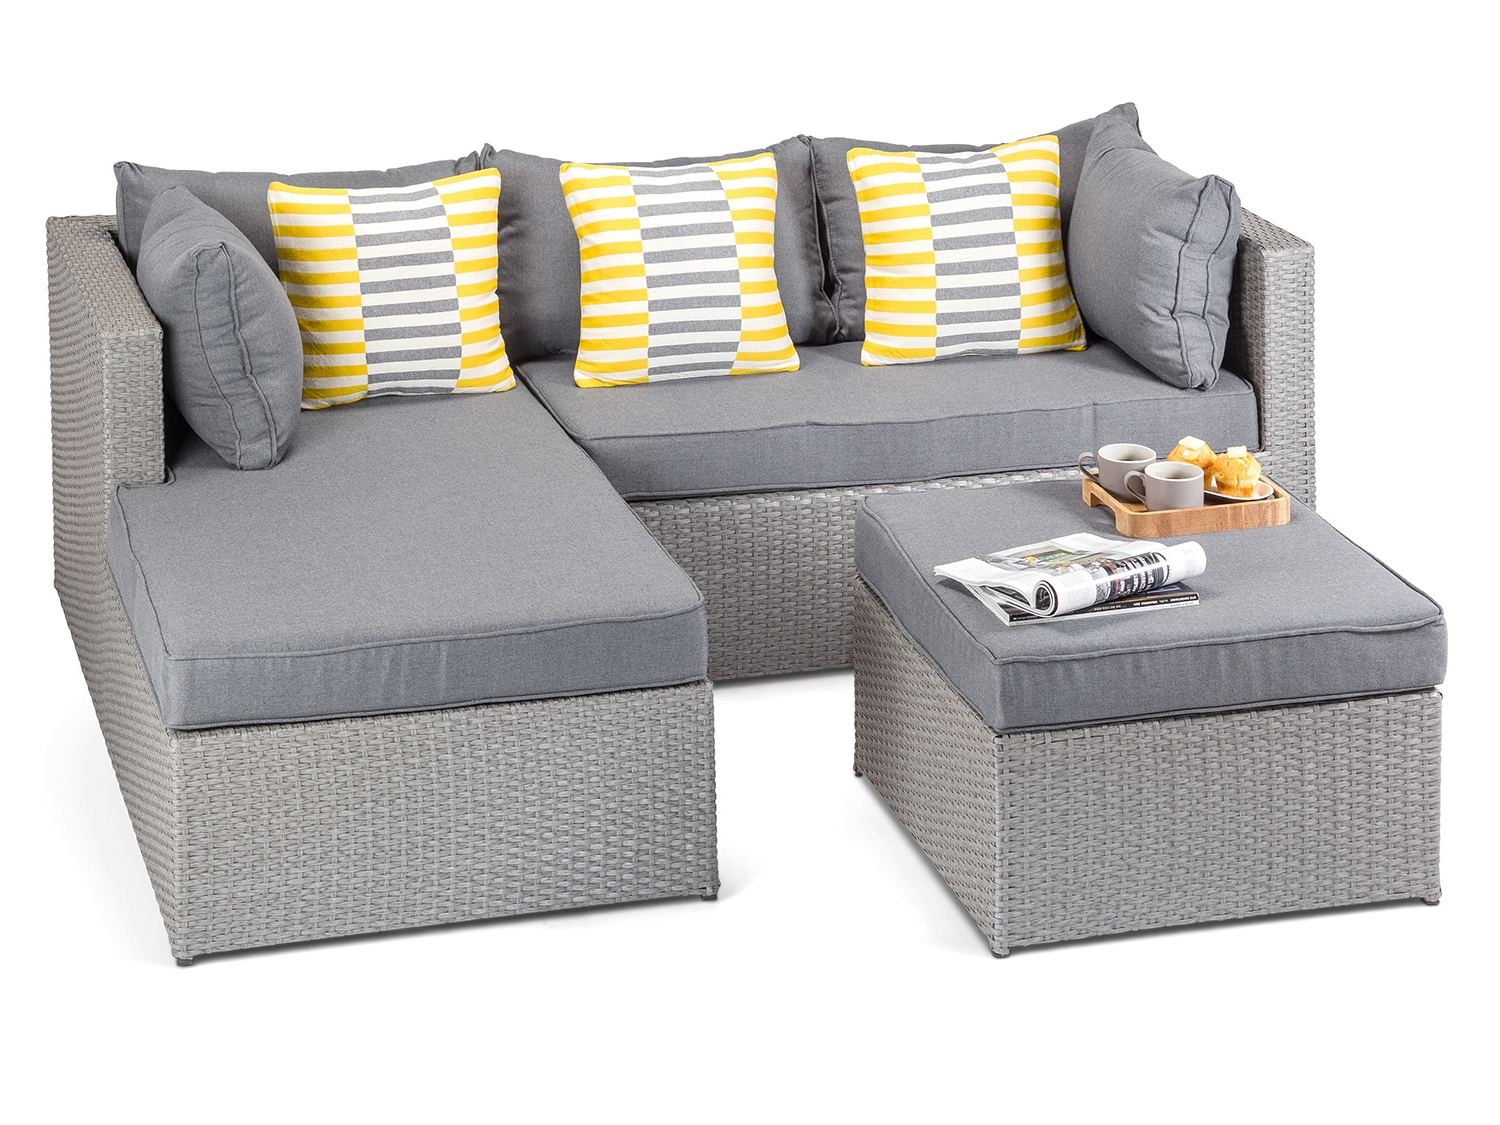 Well Liked Lorentzen Patio Sectionals With Cushions Intended For Outdoor Sofa Furniture Brilliant Lorentzen Patio Sectional (View 20 of 20)